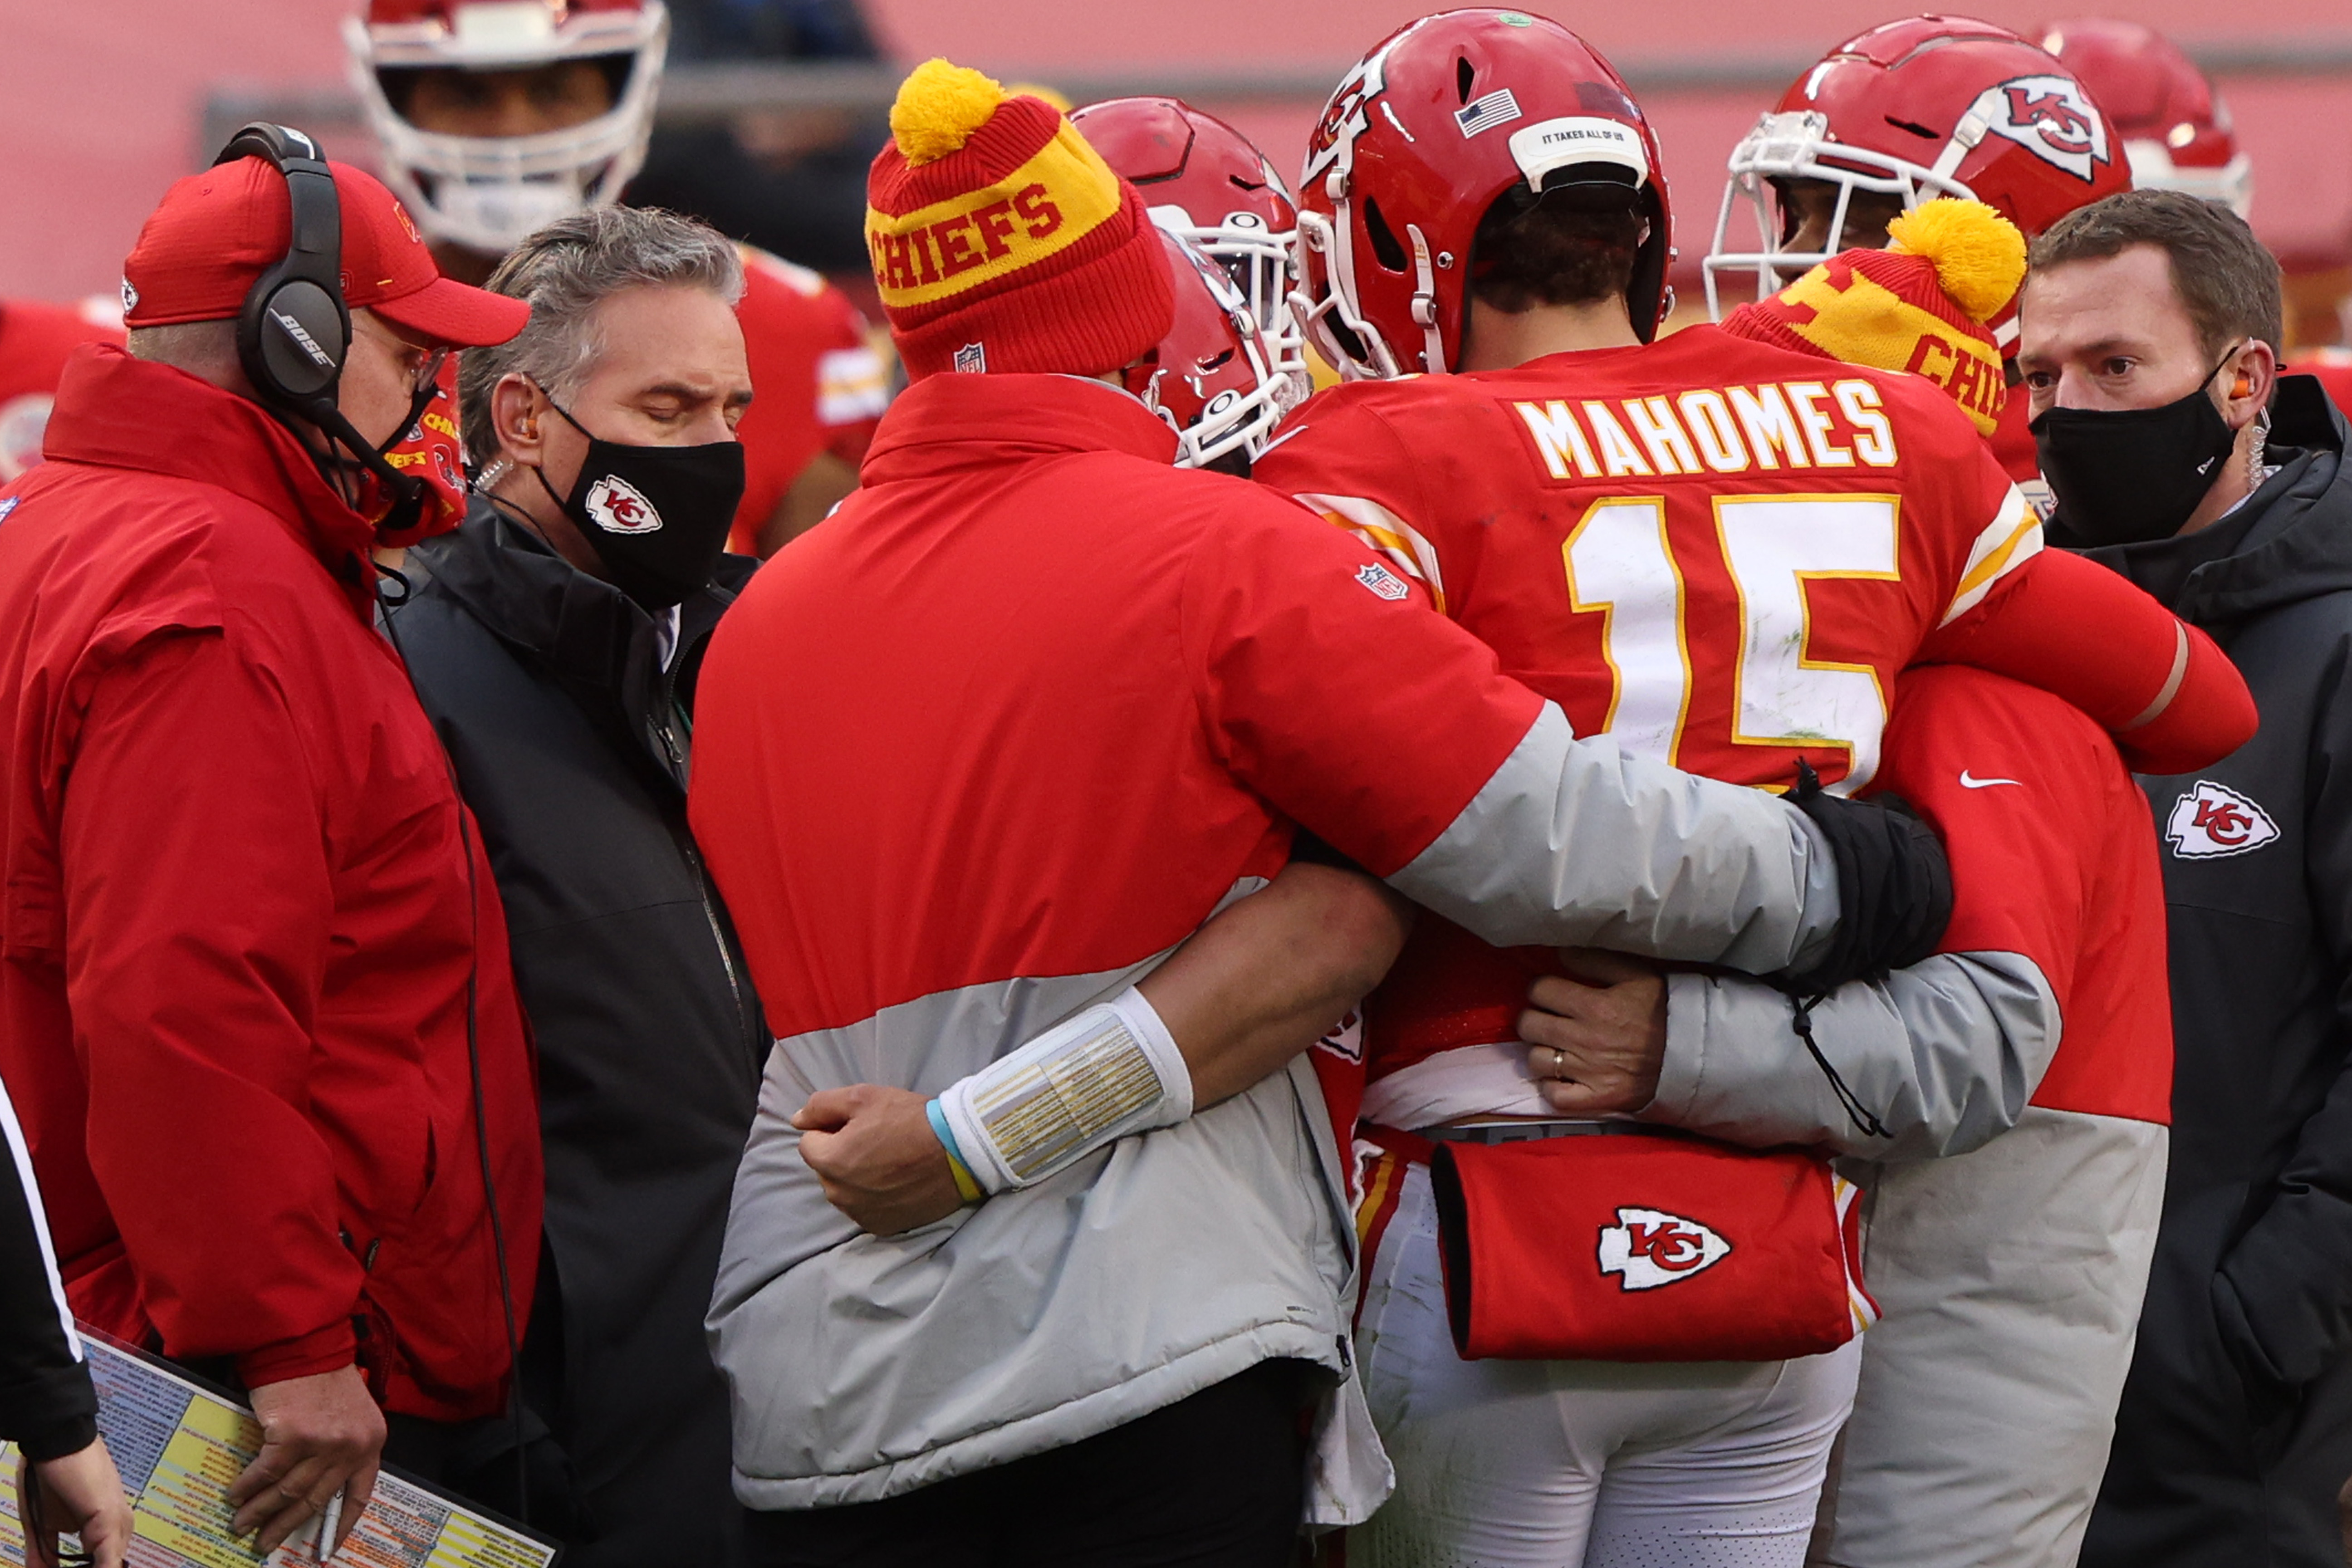 Patrick Mahomes' status for Sunday's AFC Championship game is uncertain, but Andy Reid gives a promising message about his quarterback's status